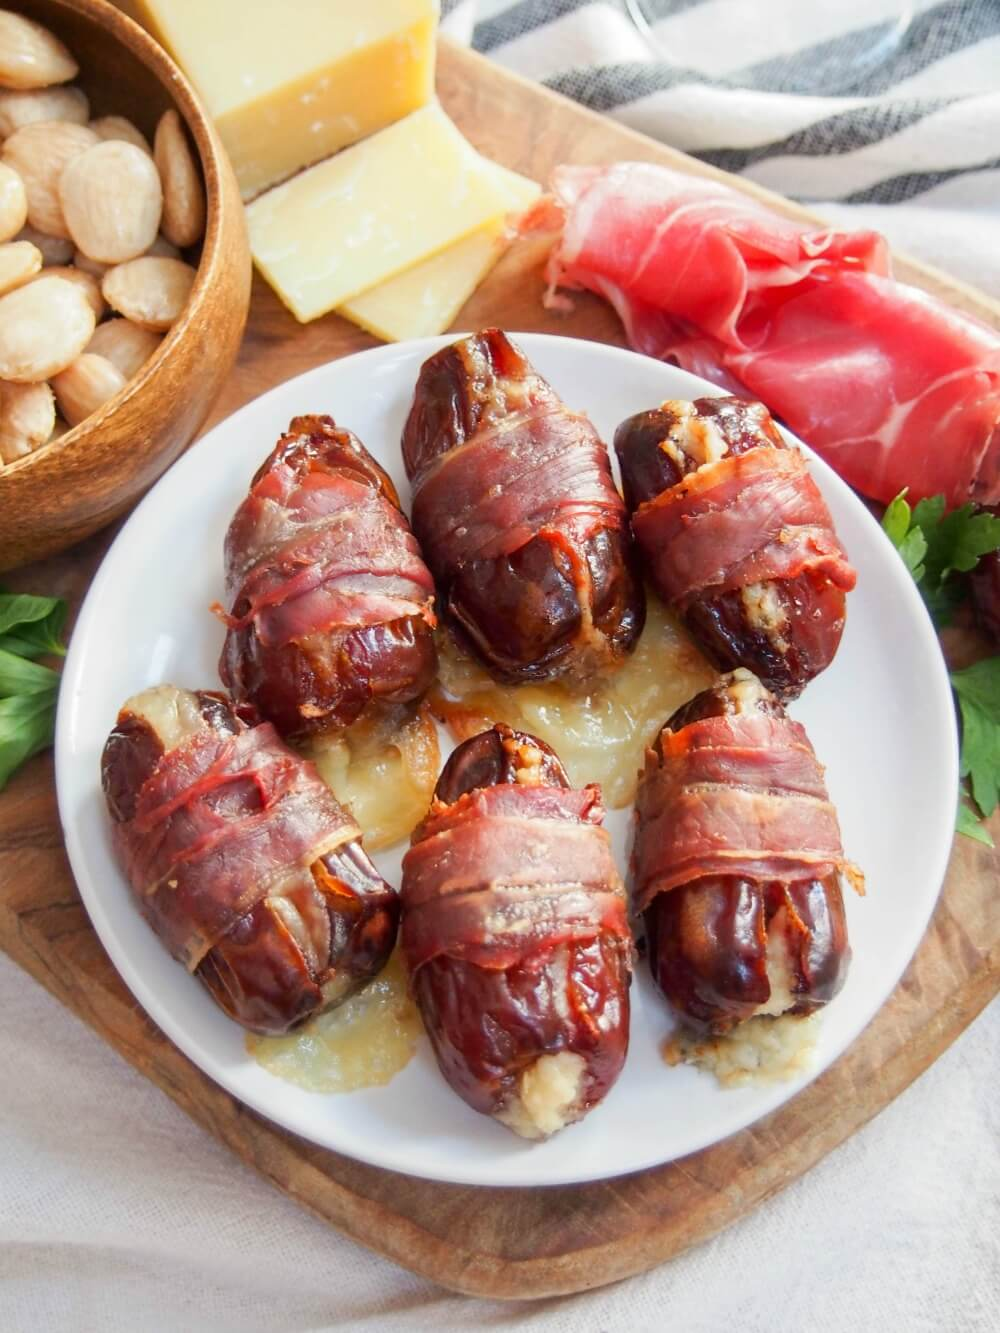 prosciutto wrapped dates on plate from above